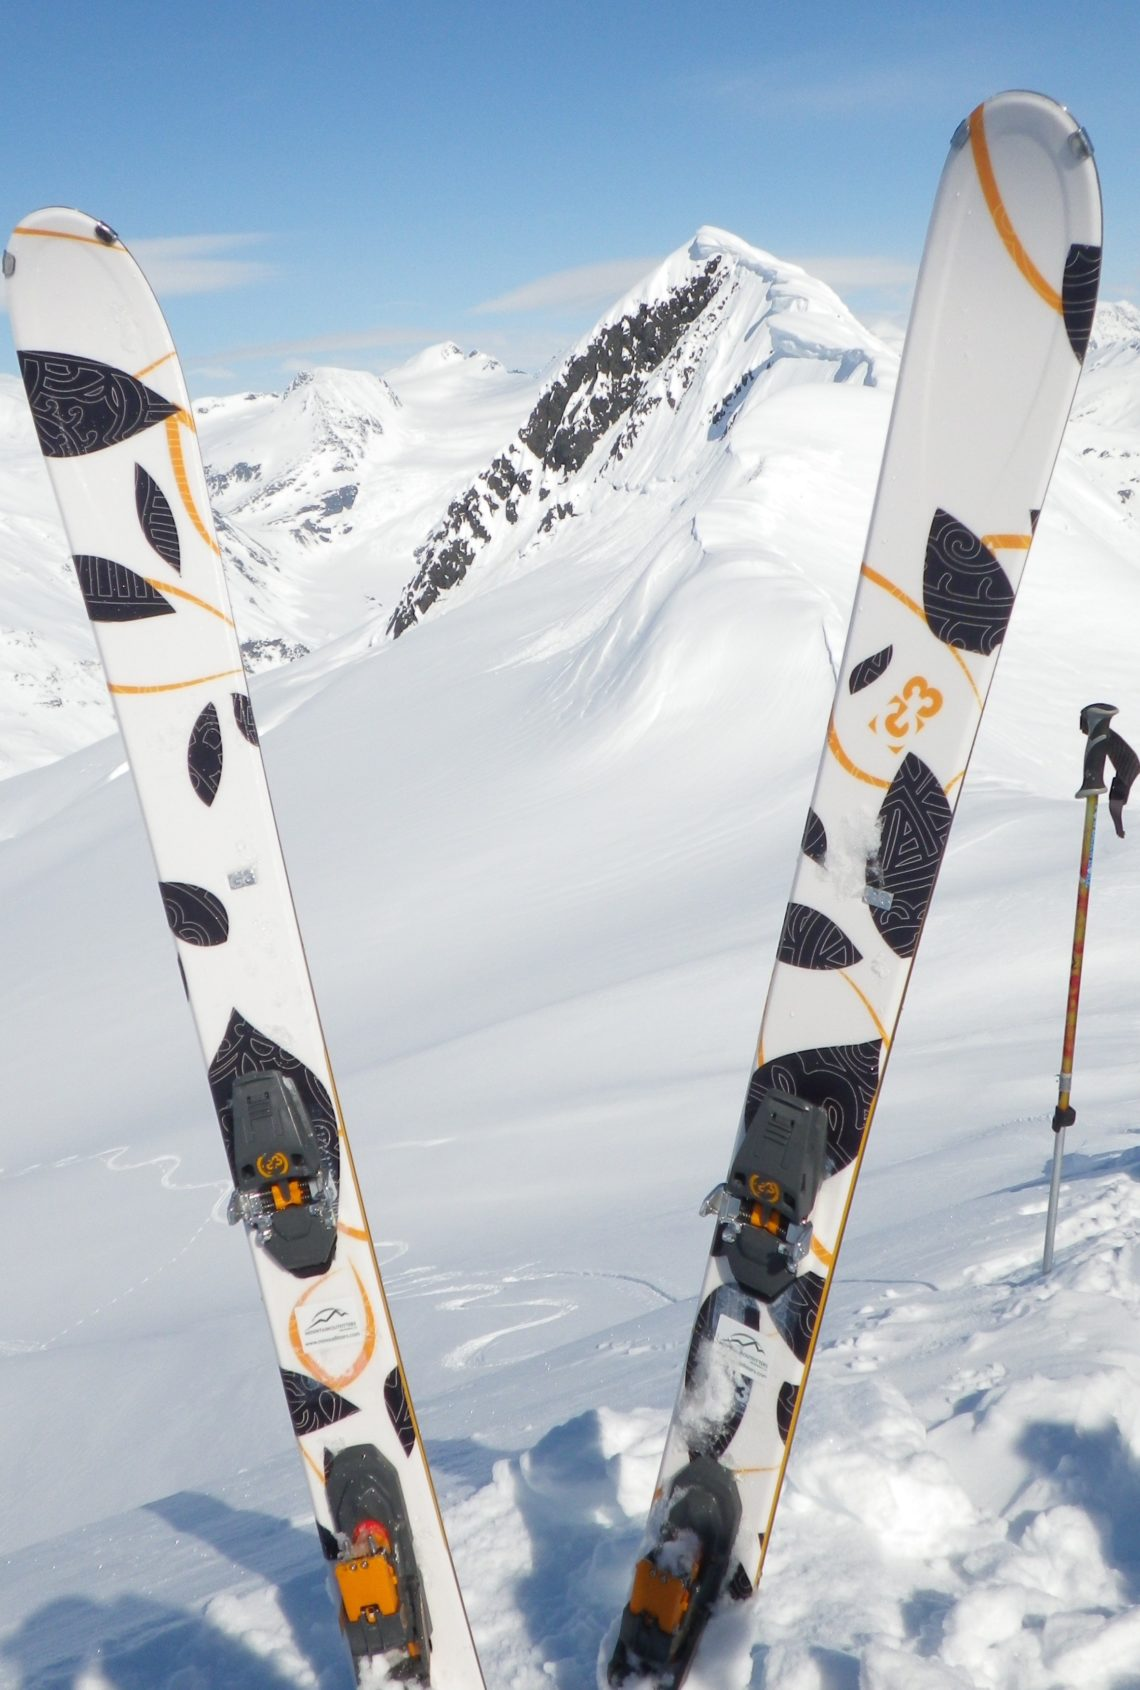 G3 skis in Alaska backcountry